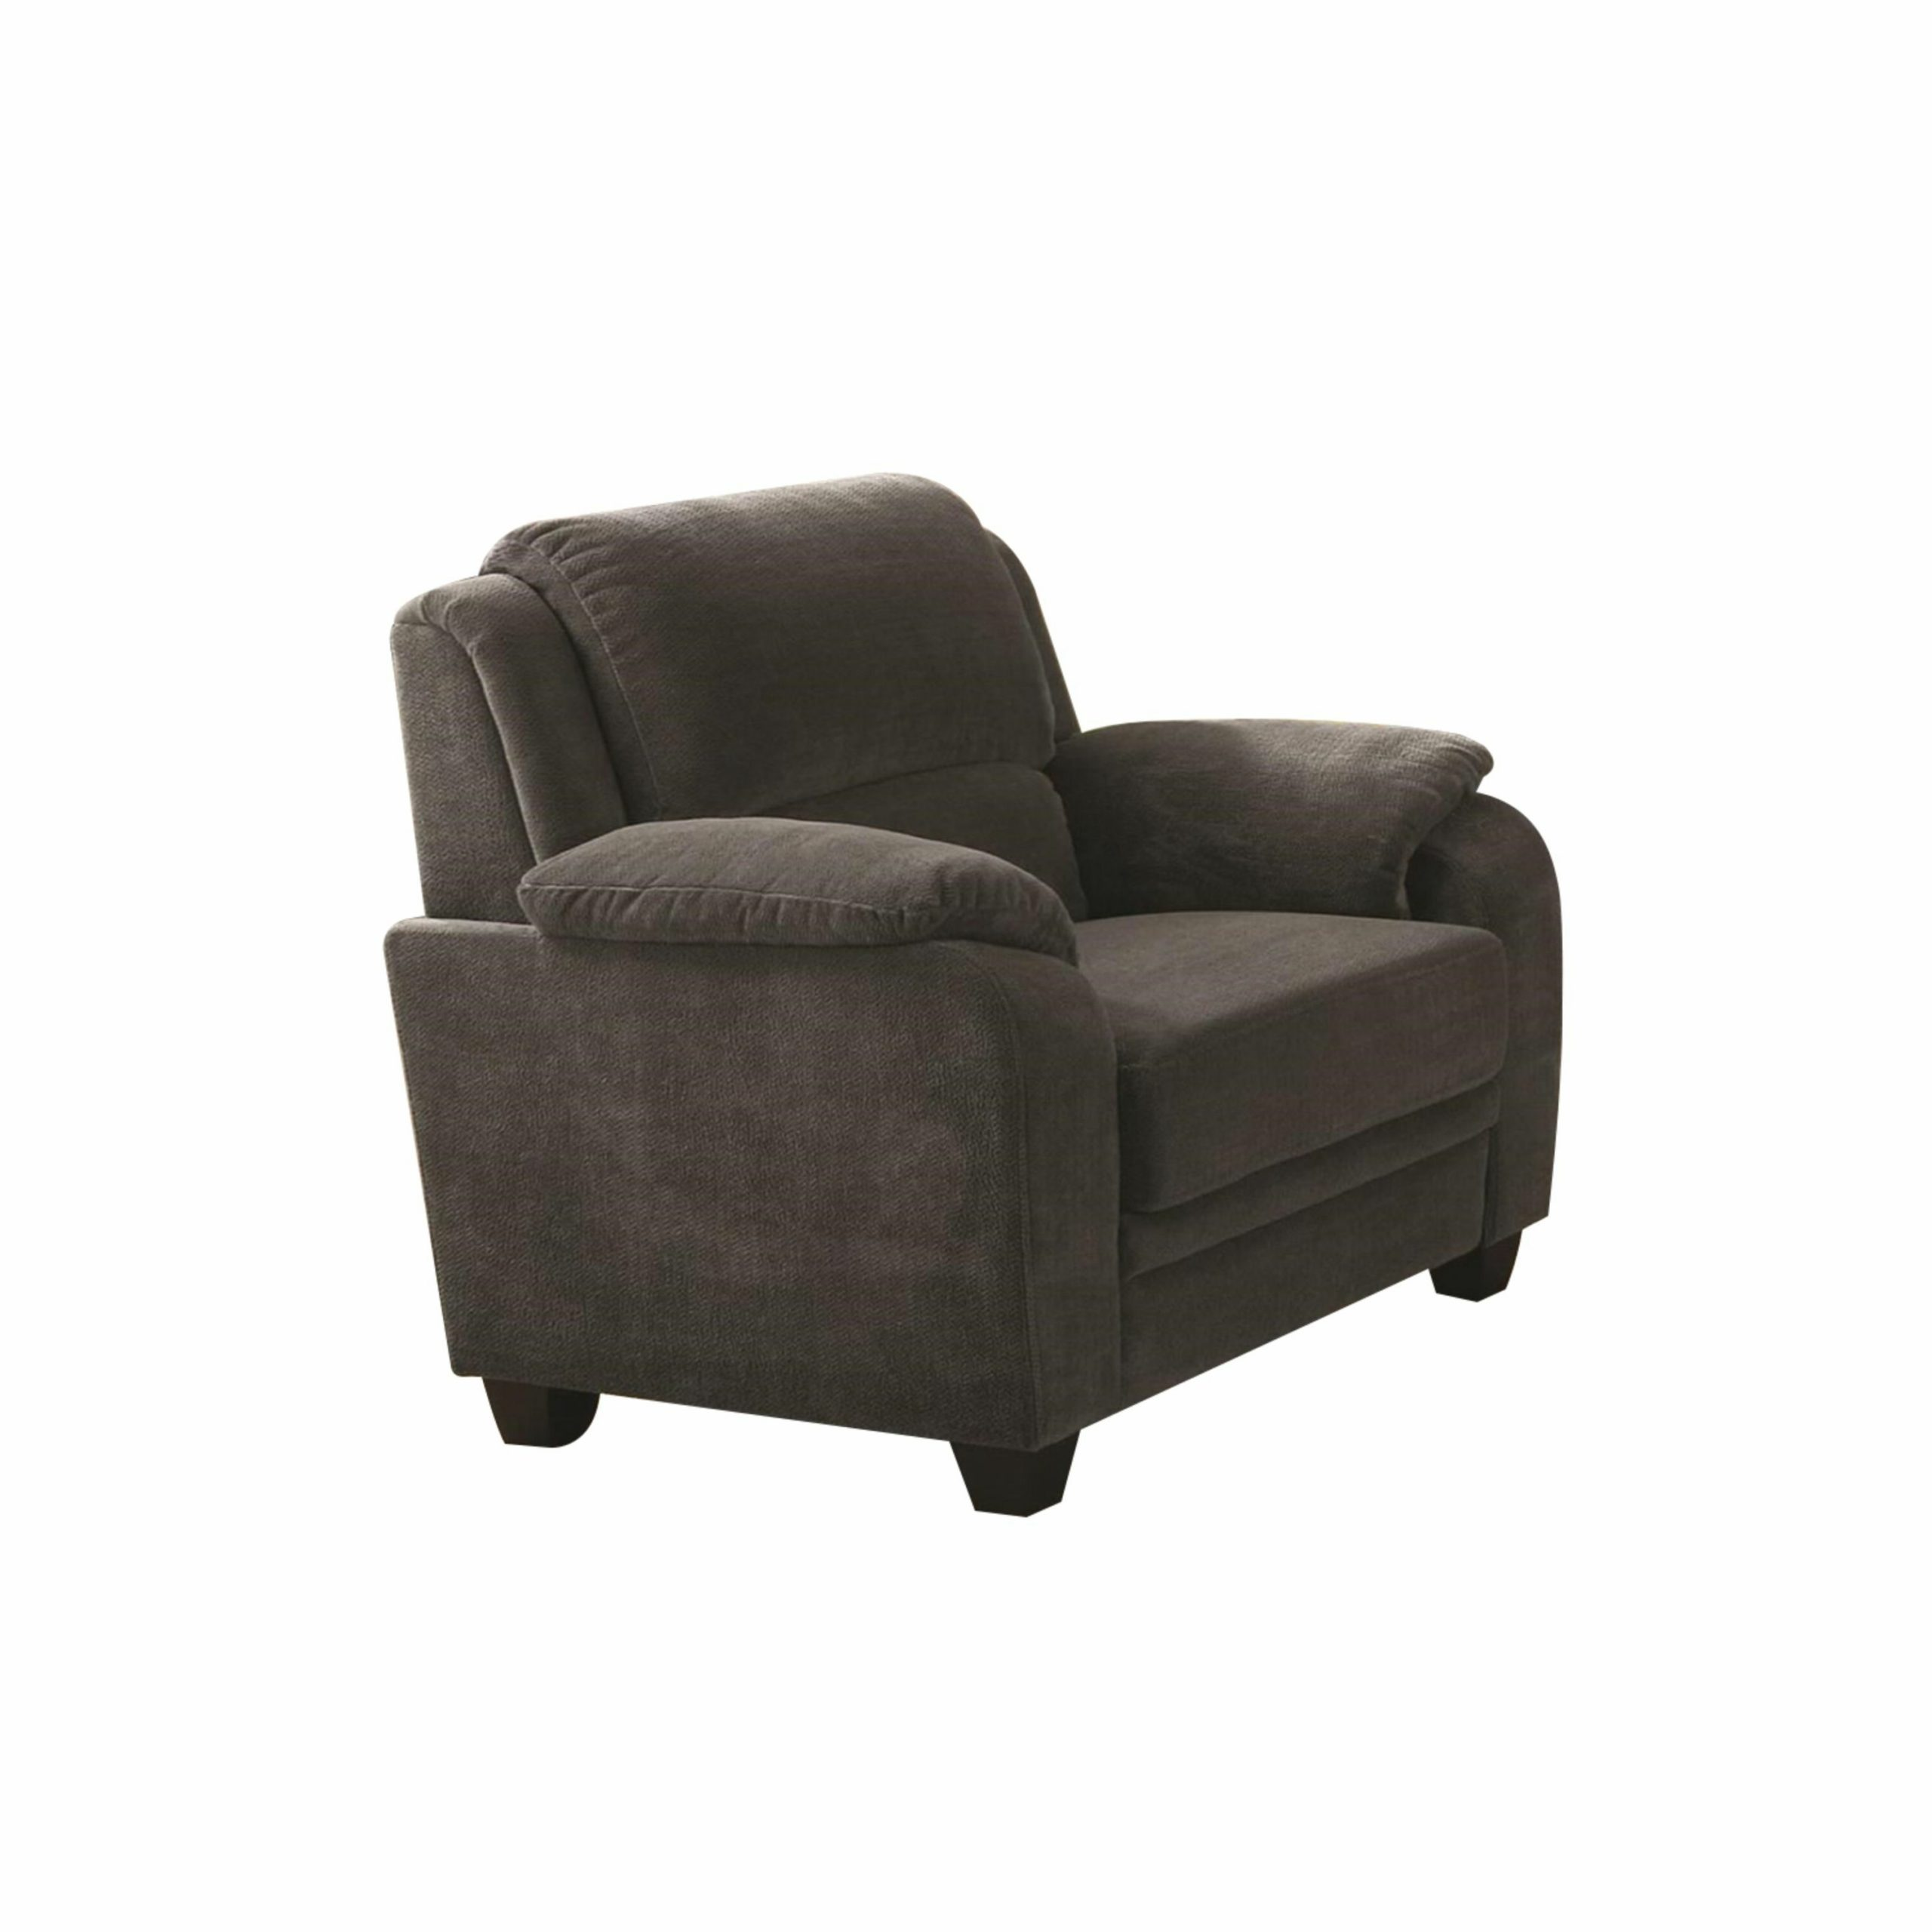 Mounce Armchair Regarding Most Up To Date Oglesby Armchairs (View 5 of 20)